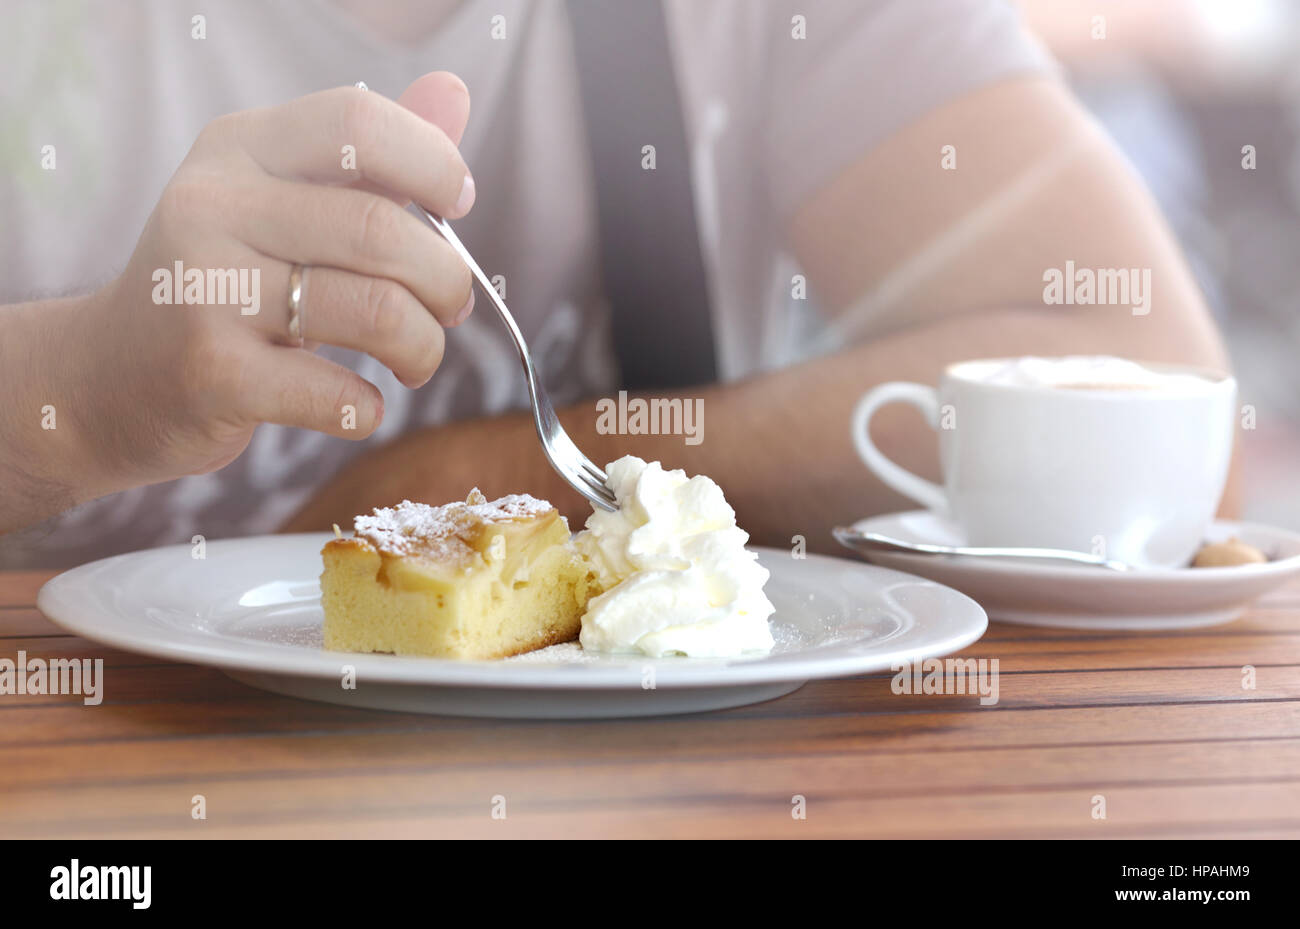 Piece Of Creamy Sweet Cake cut a man's hand with a fork. - Stock Image